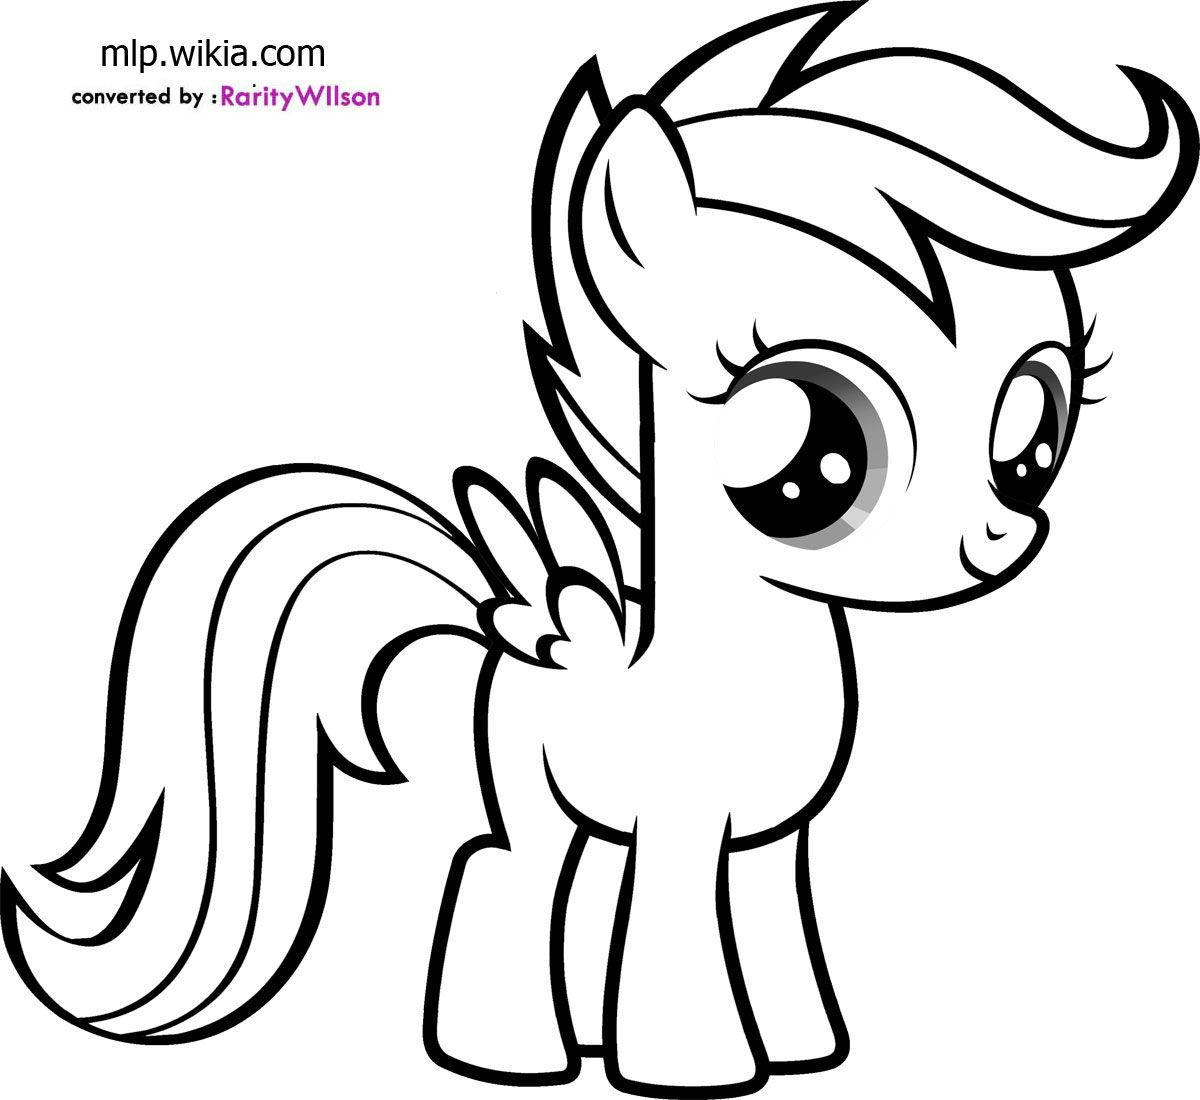 Coloring pages disney xd - Scootaloo My Little Pony Printables Coloring Pages